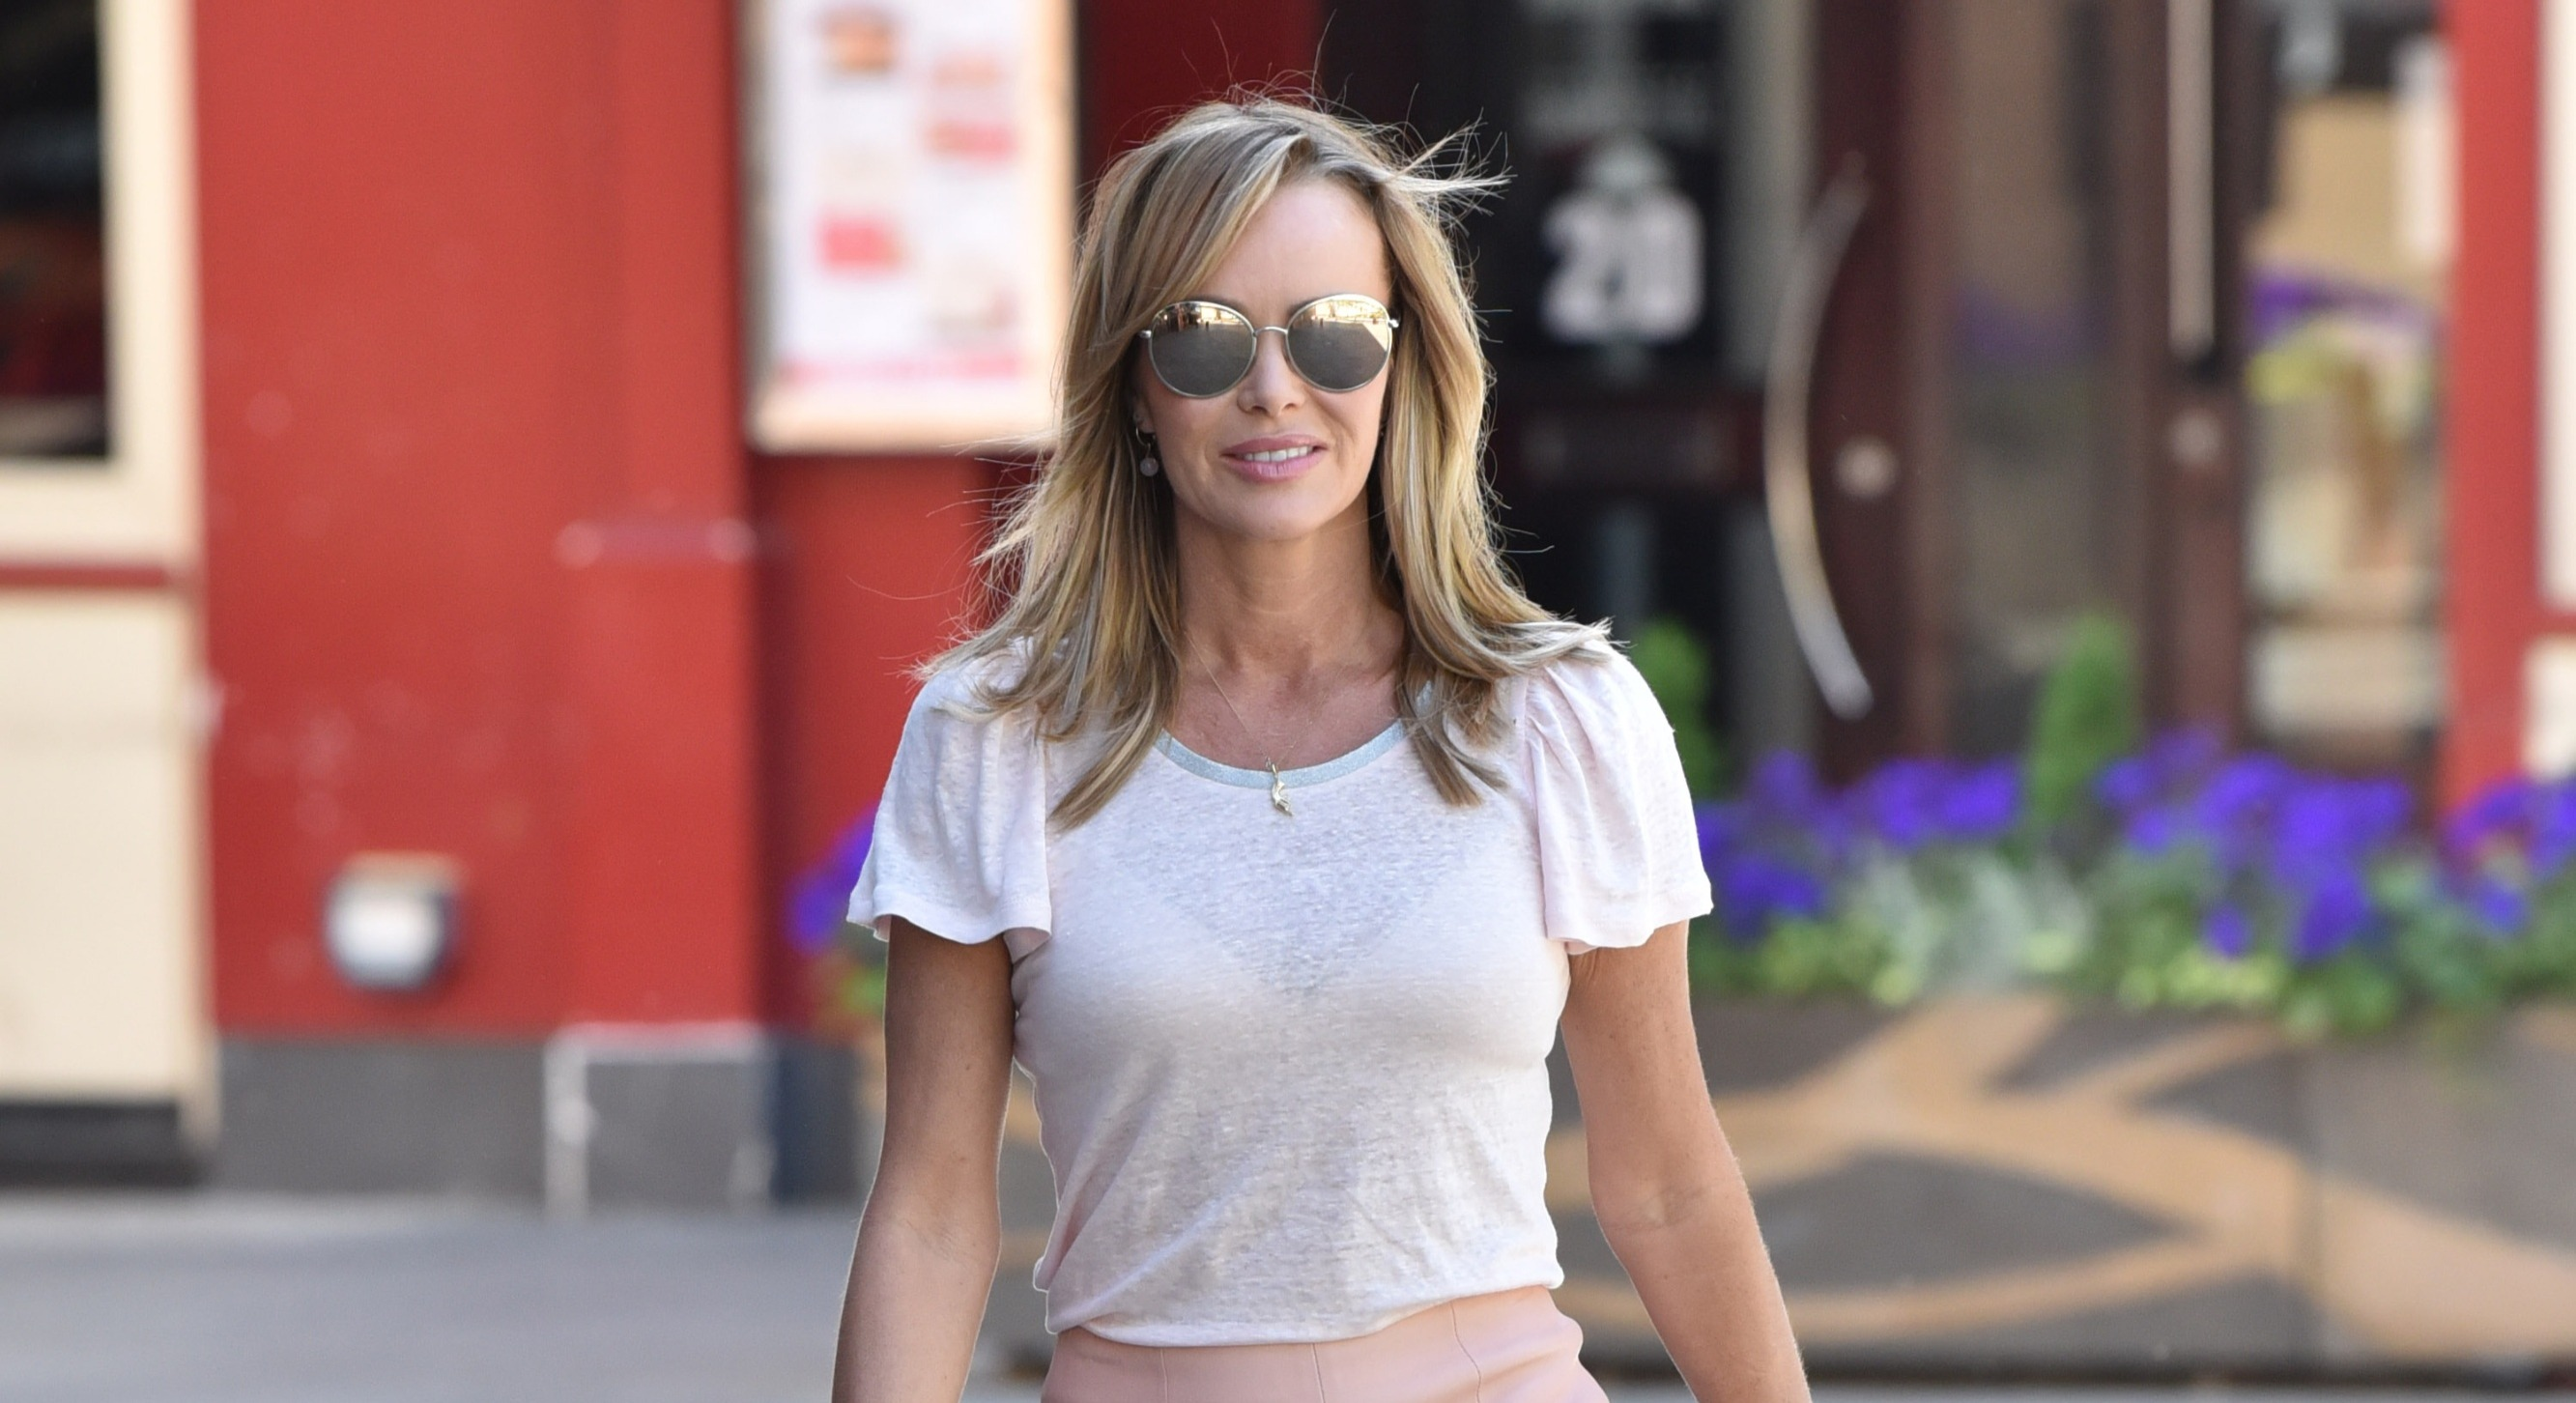 Amanda Holden slipped on a designer outfit to present her radio show this morning (Getty Images)